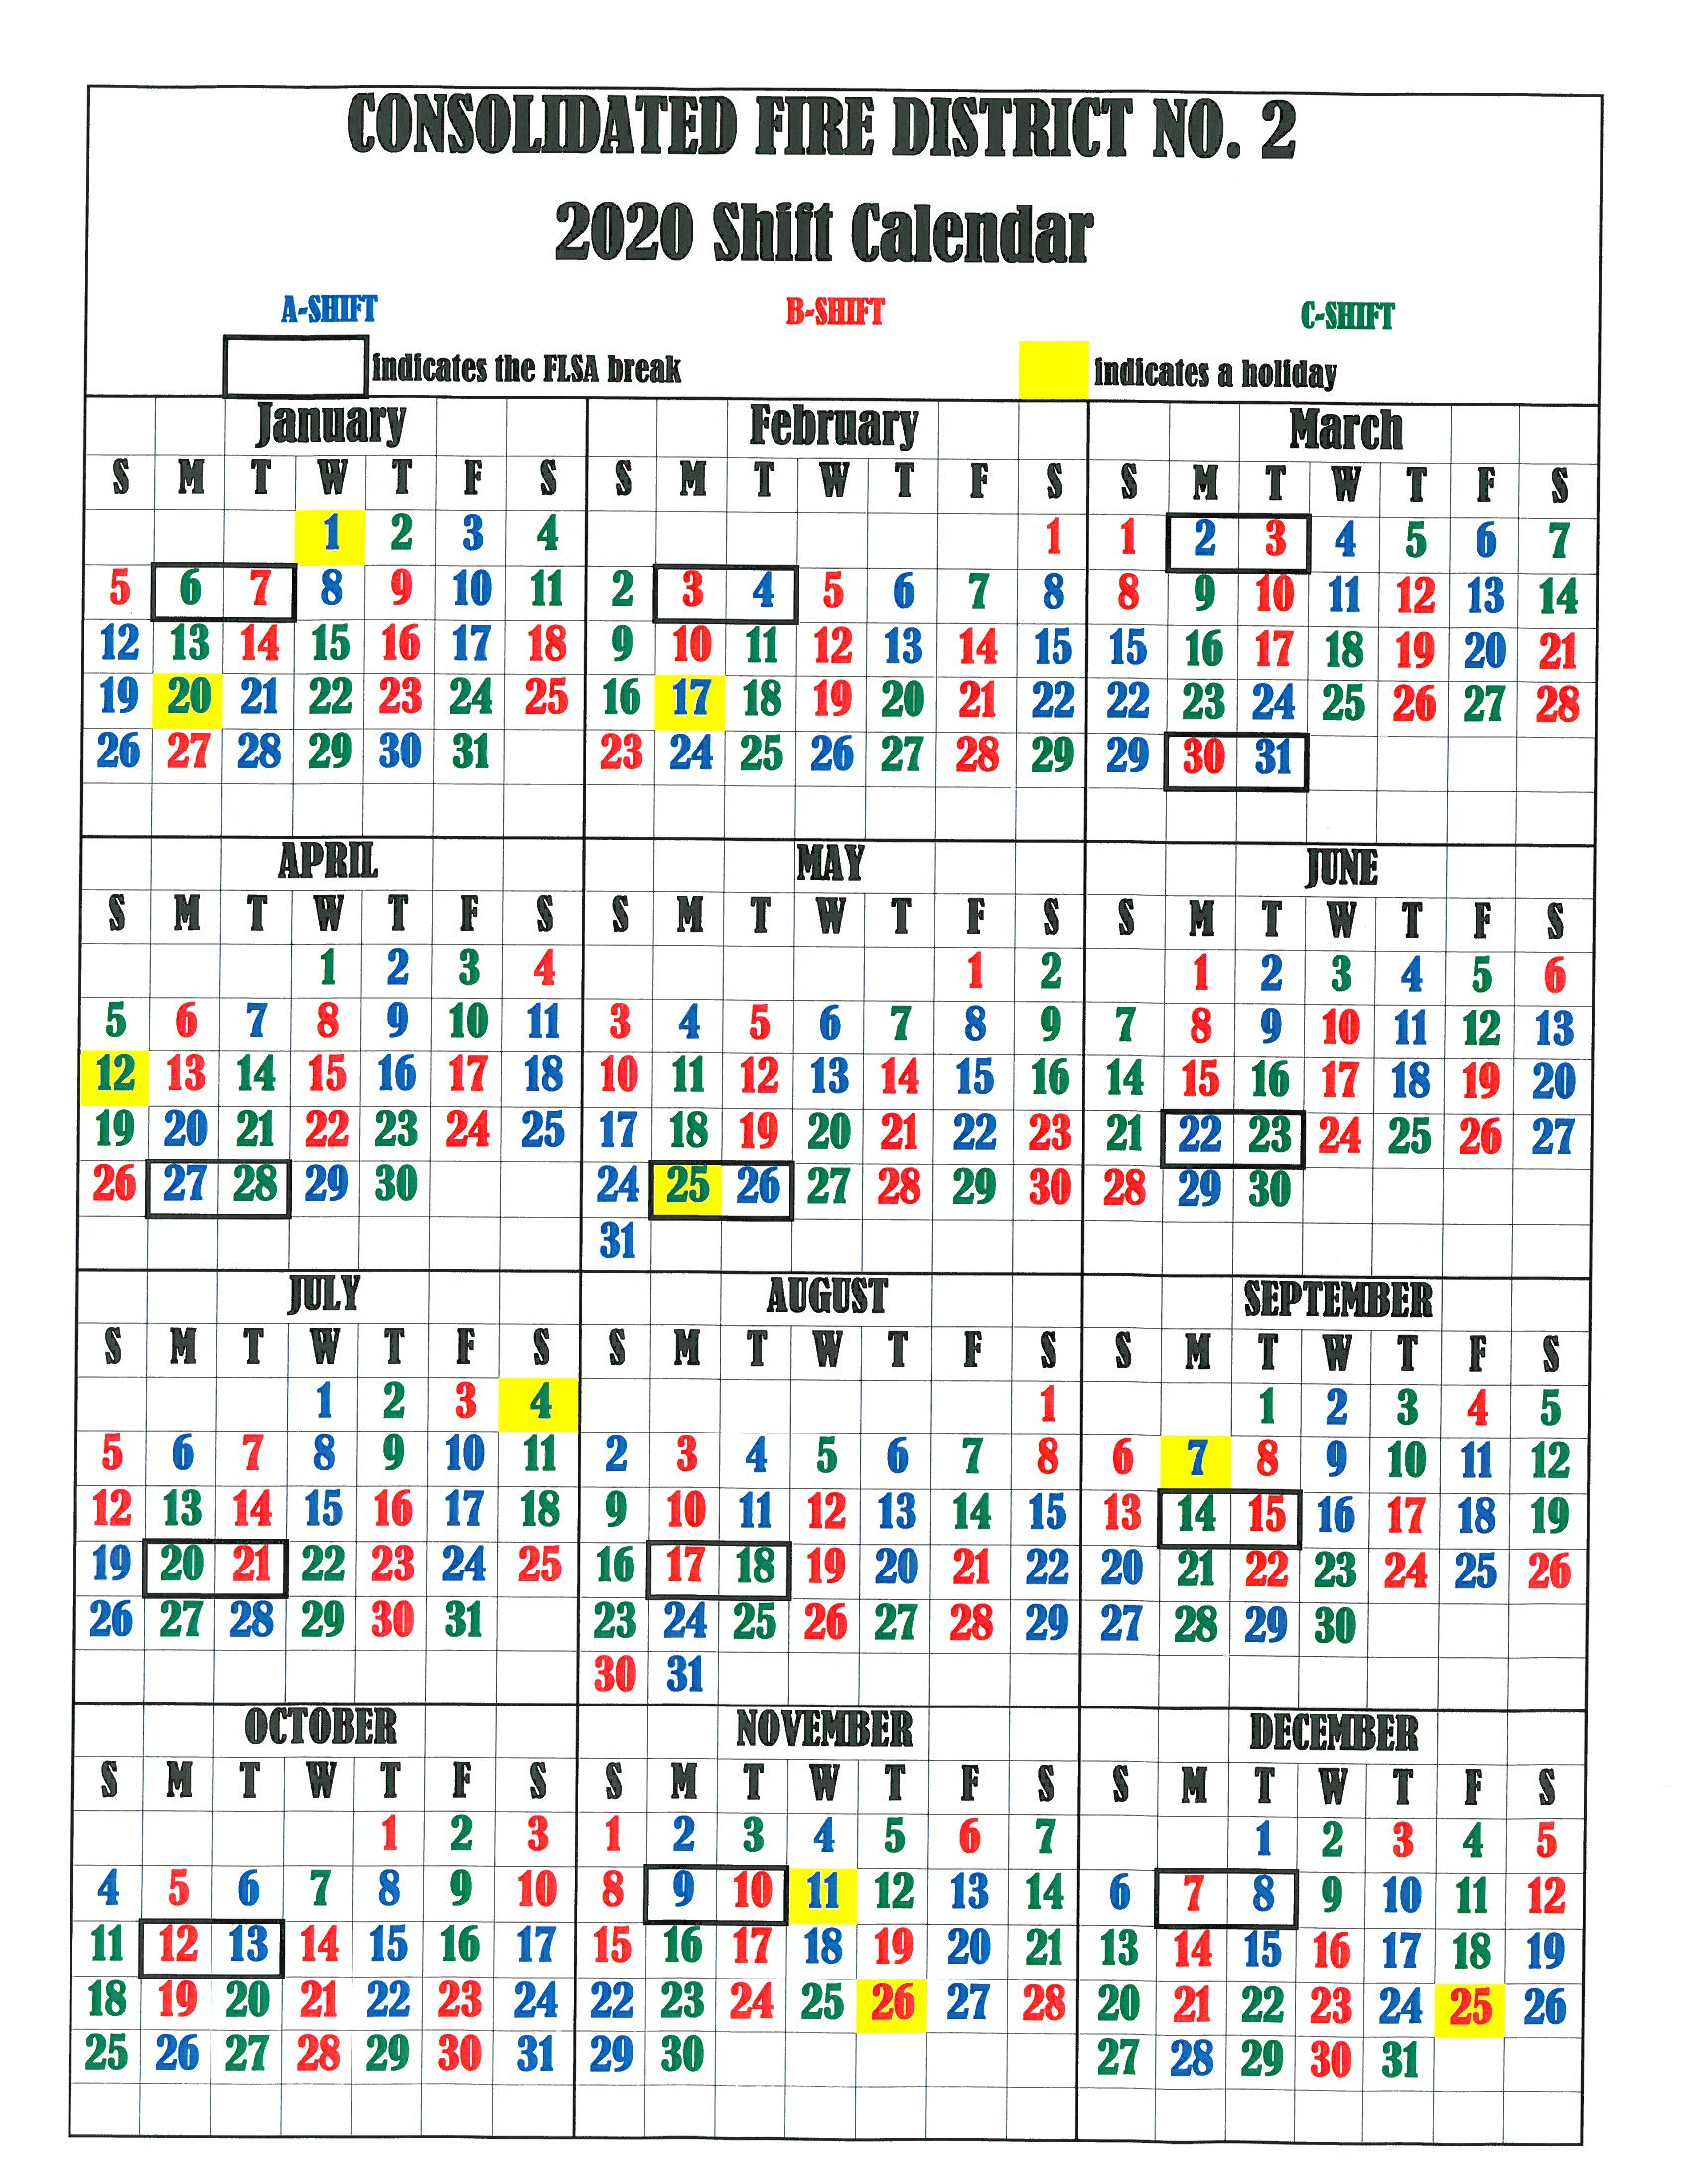 Firefighter Shift Calendar 2020 - Wpa.wpart.co for Printable Firefighter Shift Calendar